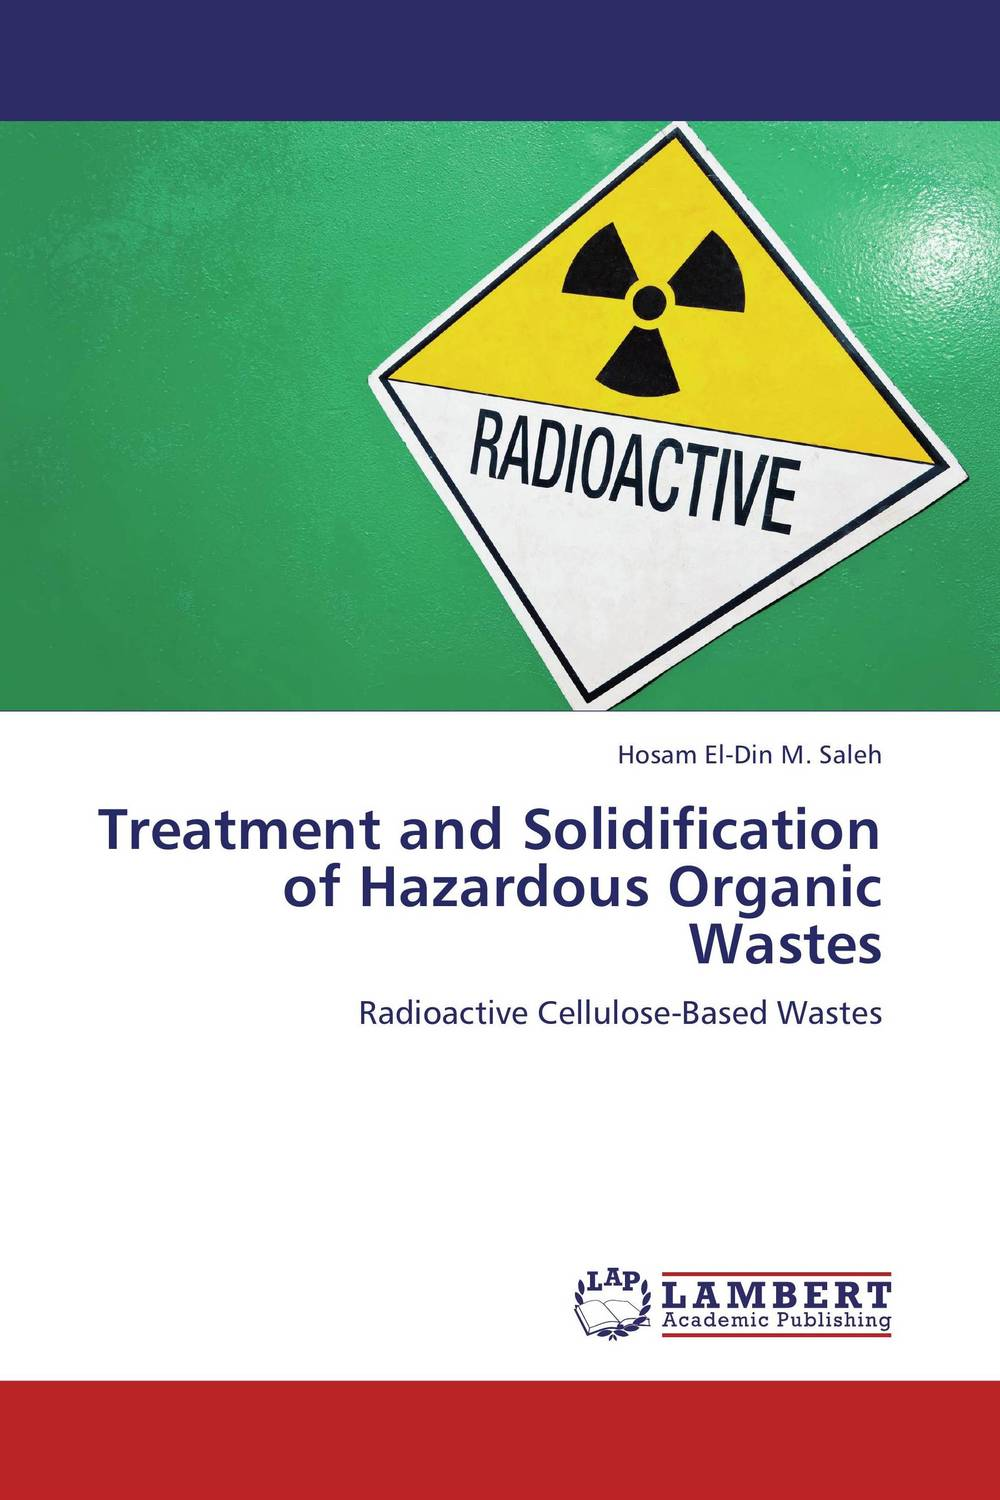 the importance of isolation of radioactive wastes The time radioactive waste must be stored for depends on the type of waste and radioactive isotopes current approaches to managing radioactive waste have been segregation and storage for short-lived waste, near-surface disposal for low and some intermediate level waste, and deep burial or partitioning / transmutation for the high-level waste.